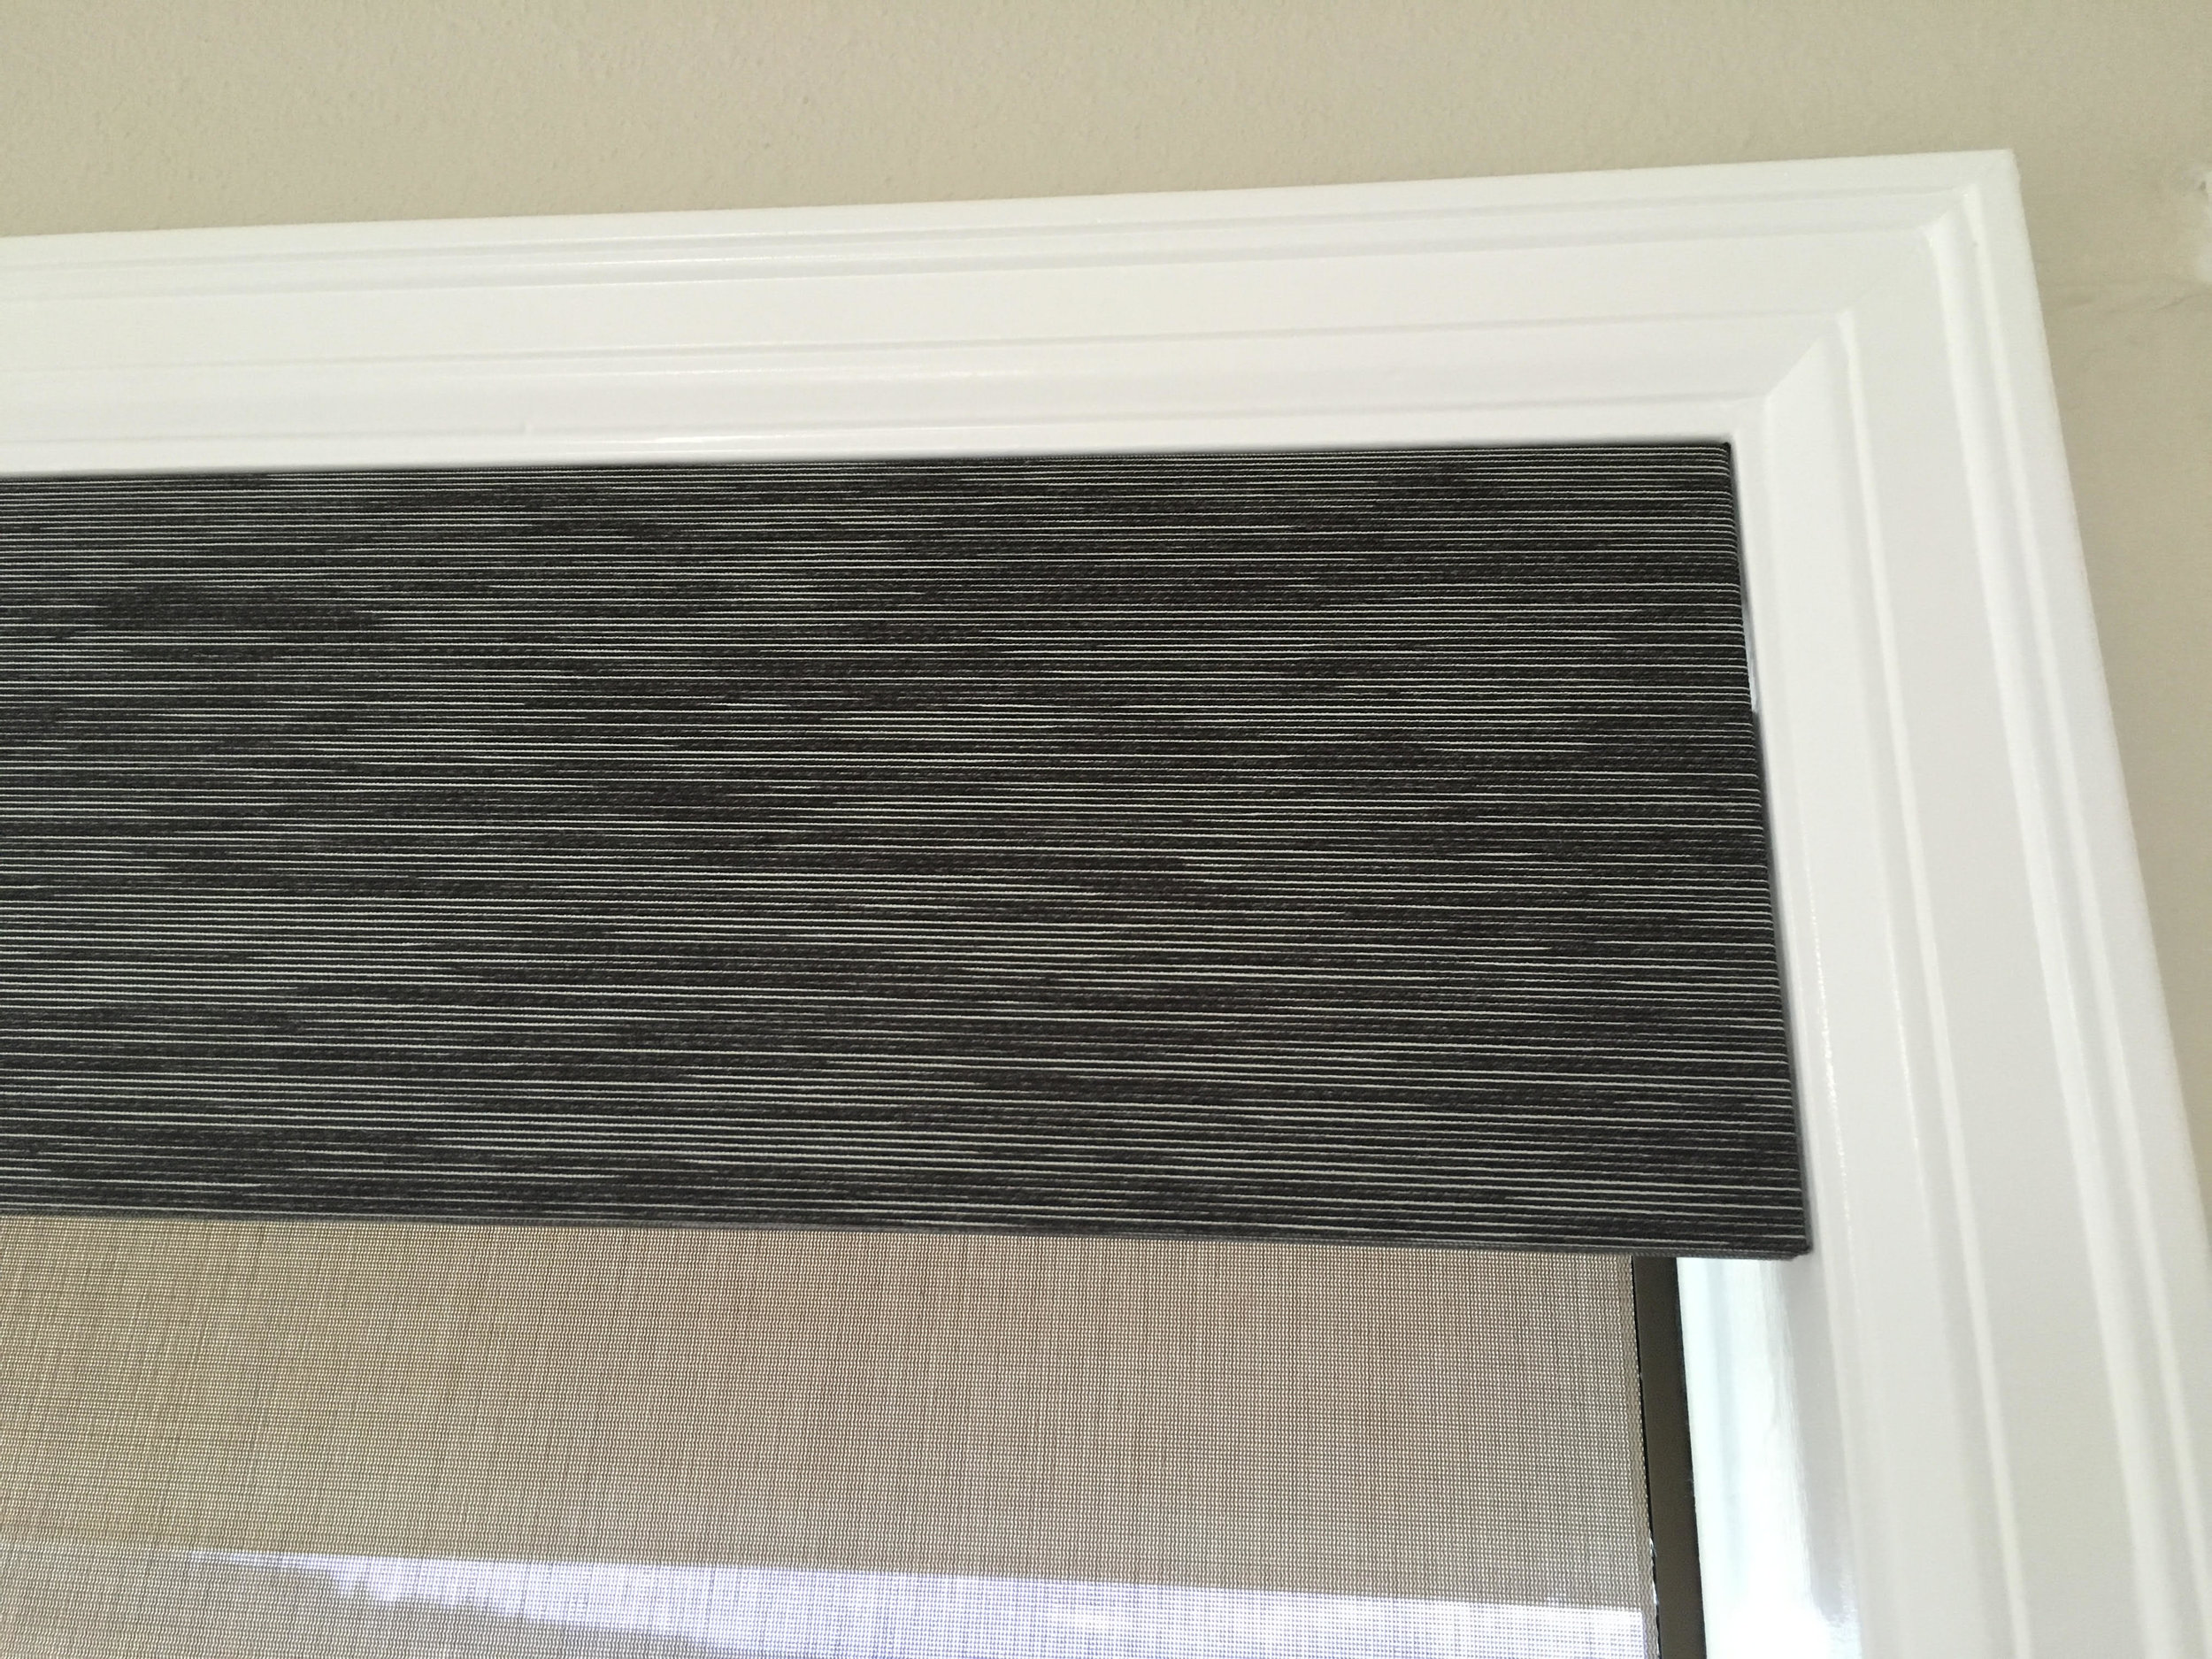 Light Filtering Roller Shade with Contrasting Fabric Valance